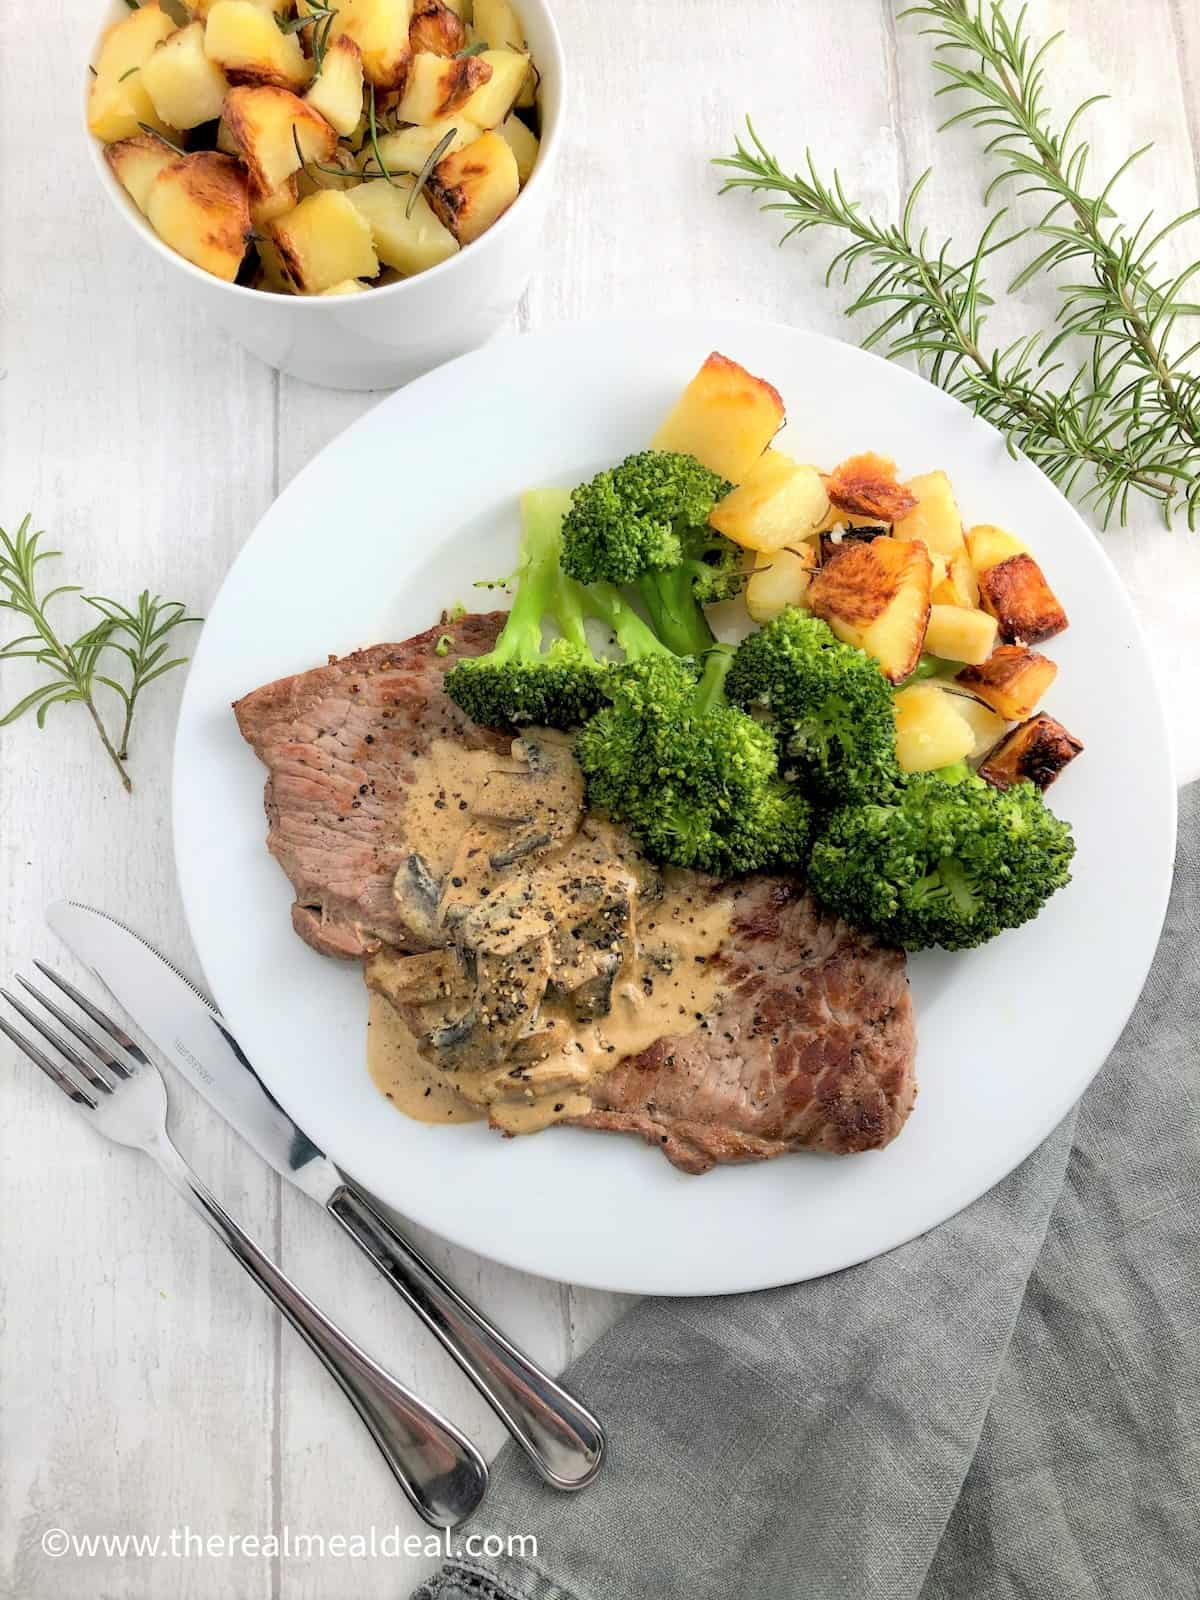 Rose veal escalope with creamy mushroom sauce and rosemary roasted potatoes and broccoli on plate with roasted potatoes in bowl to side with fresh rosemary leaves